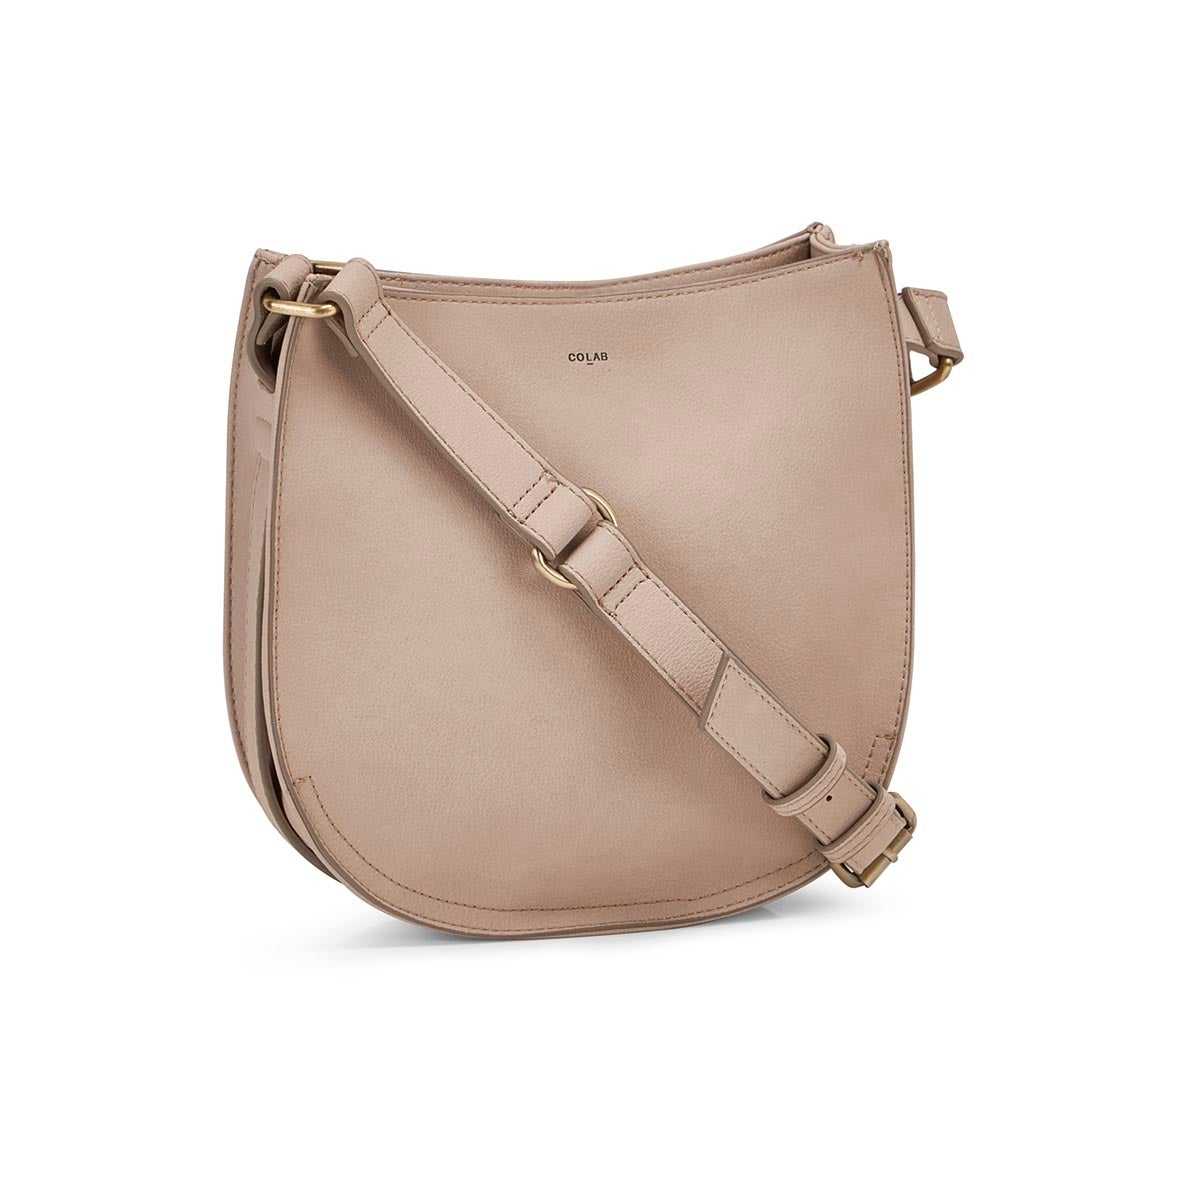 Lds mushroom medium crossbody bag